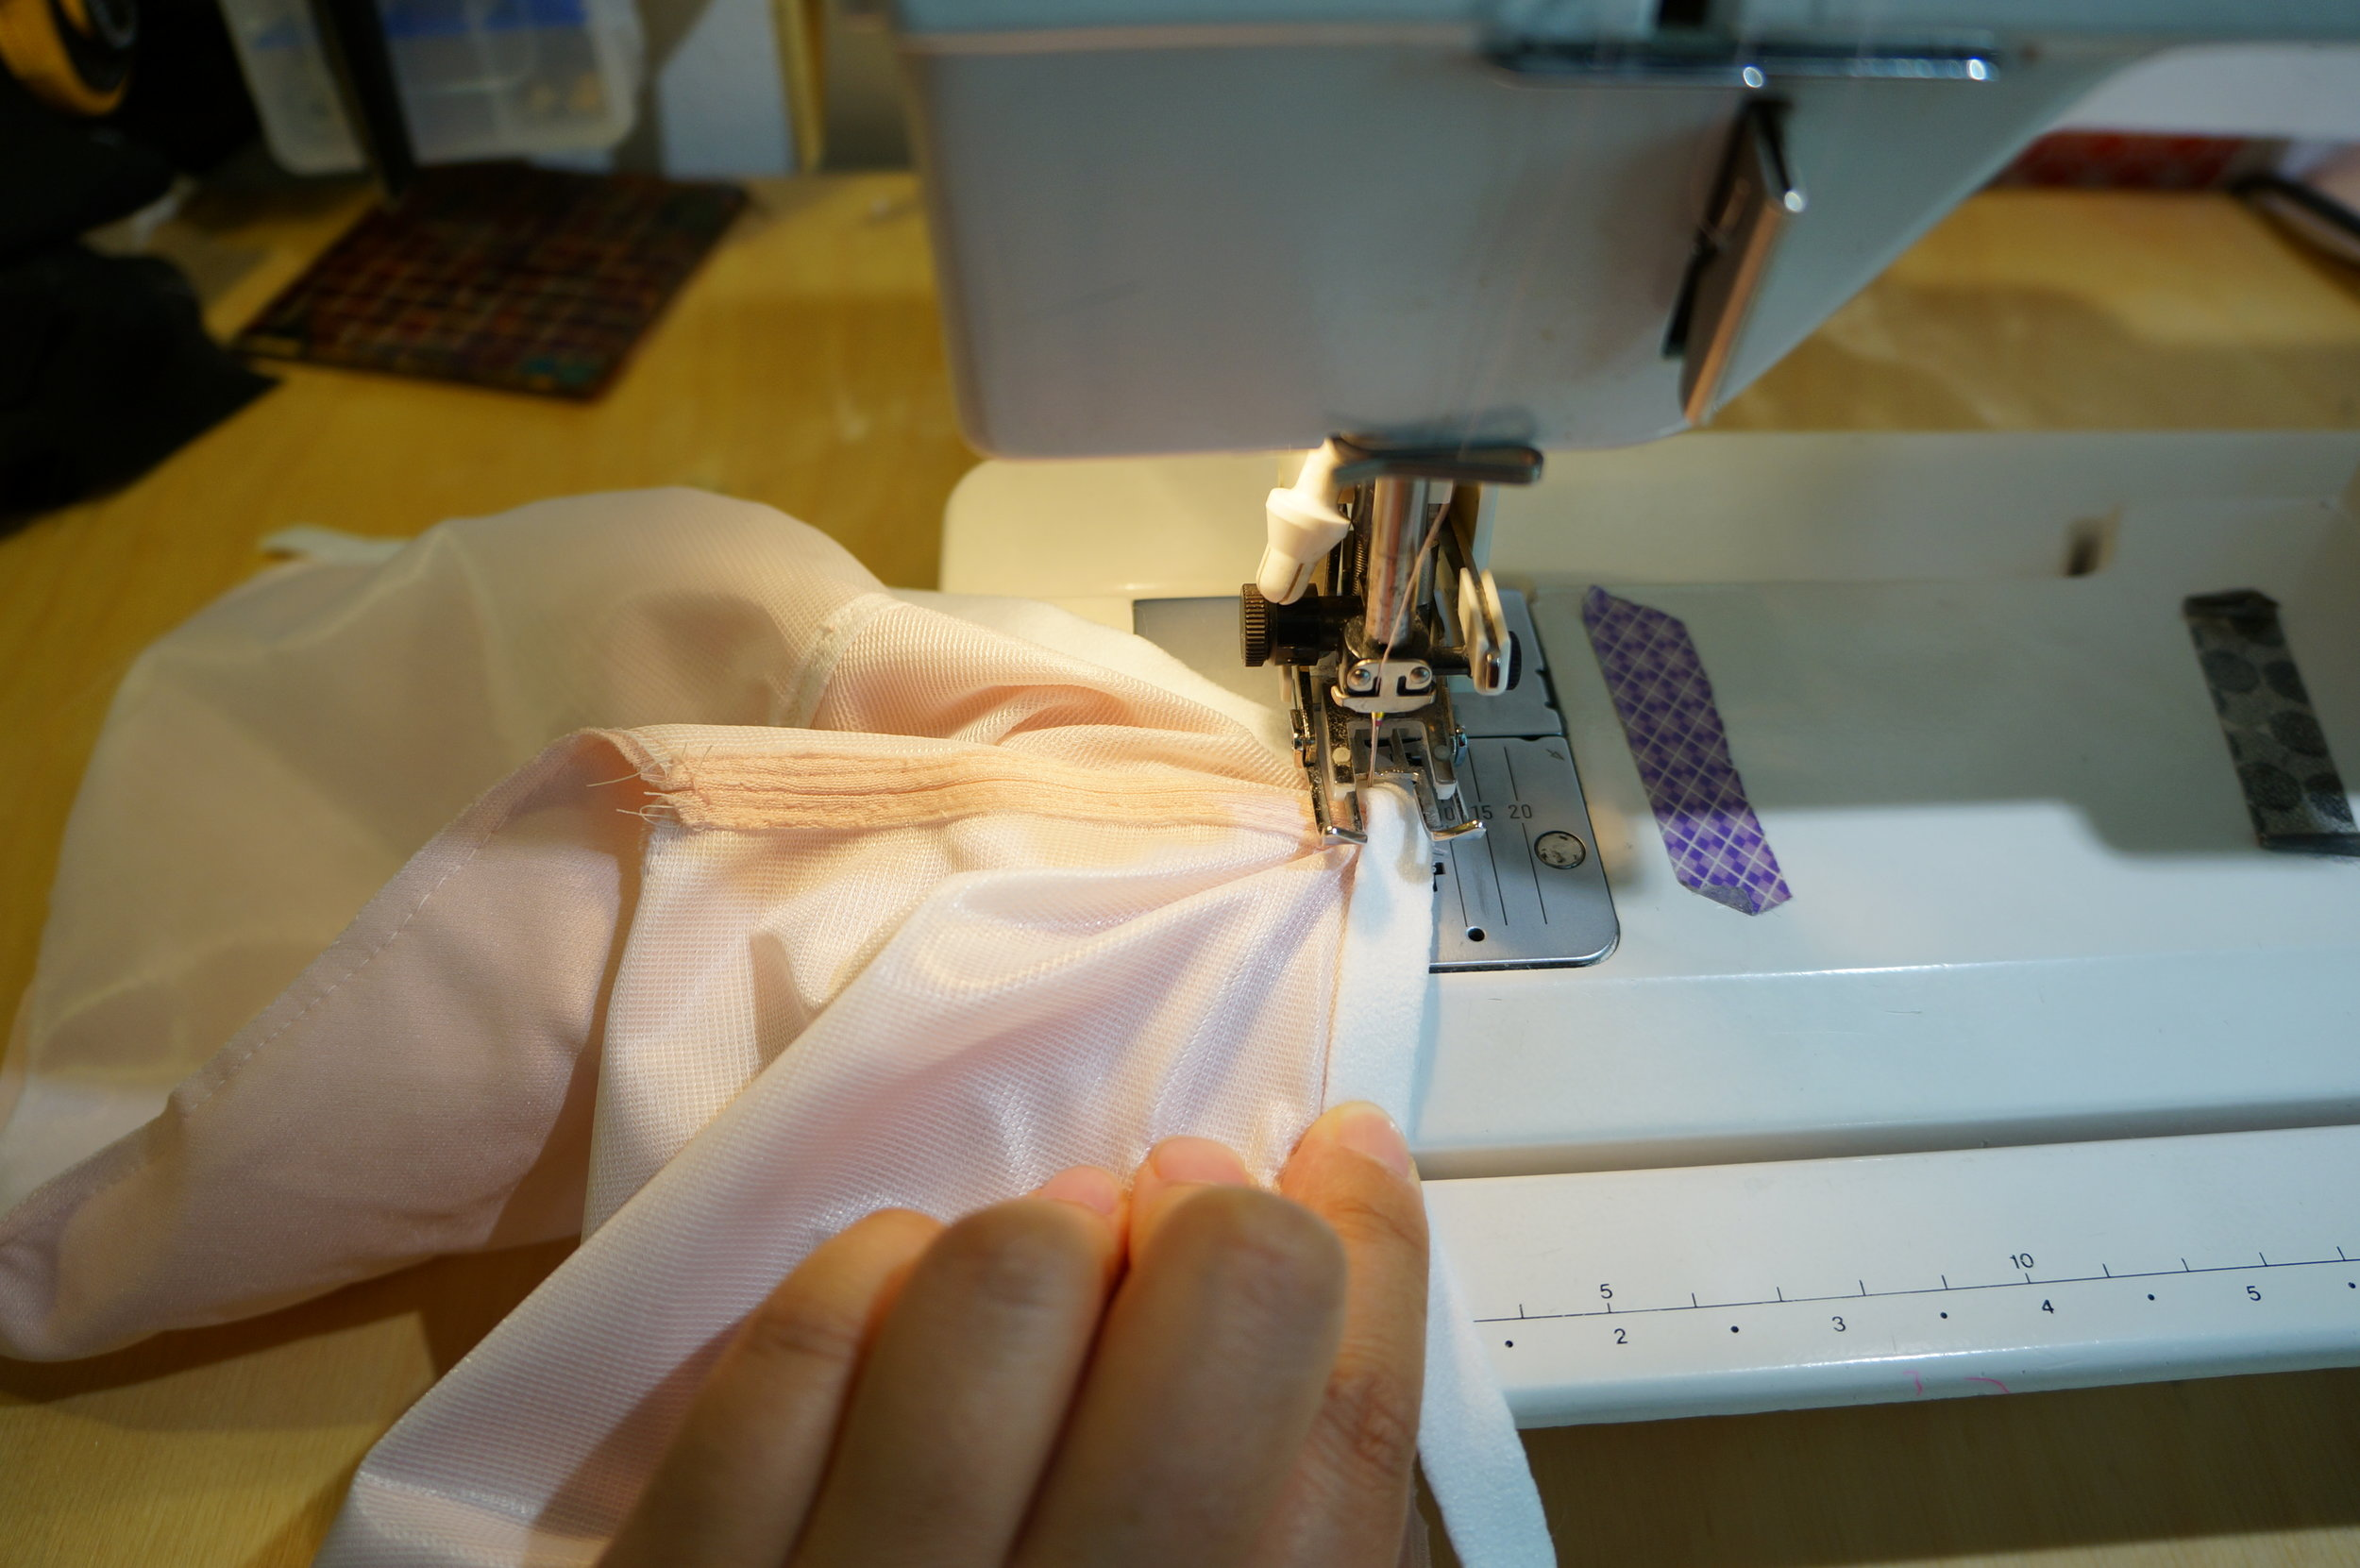 Stopped in the middle with needle down and presser foot up, rearrange fabric so second cup is smooth.